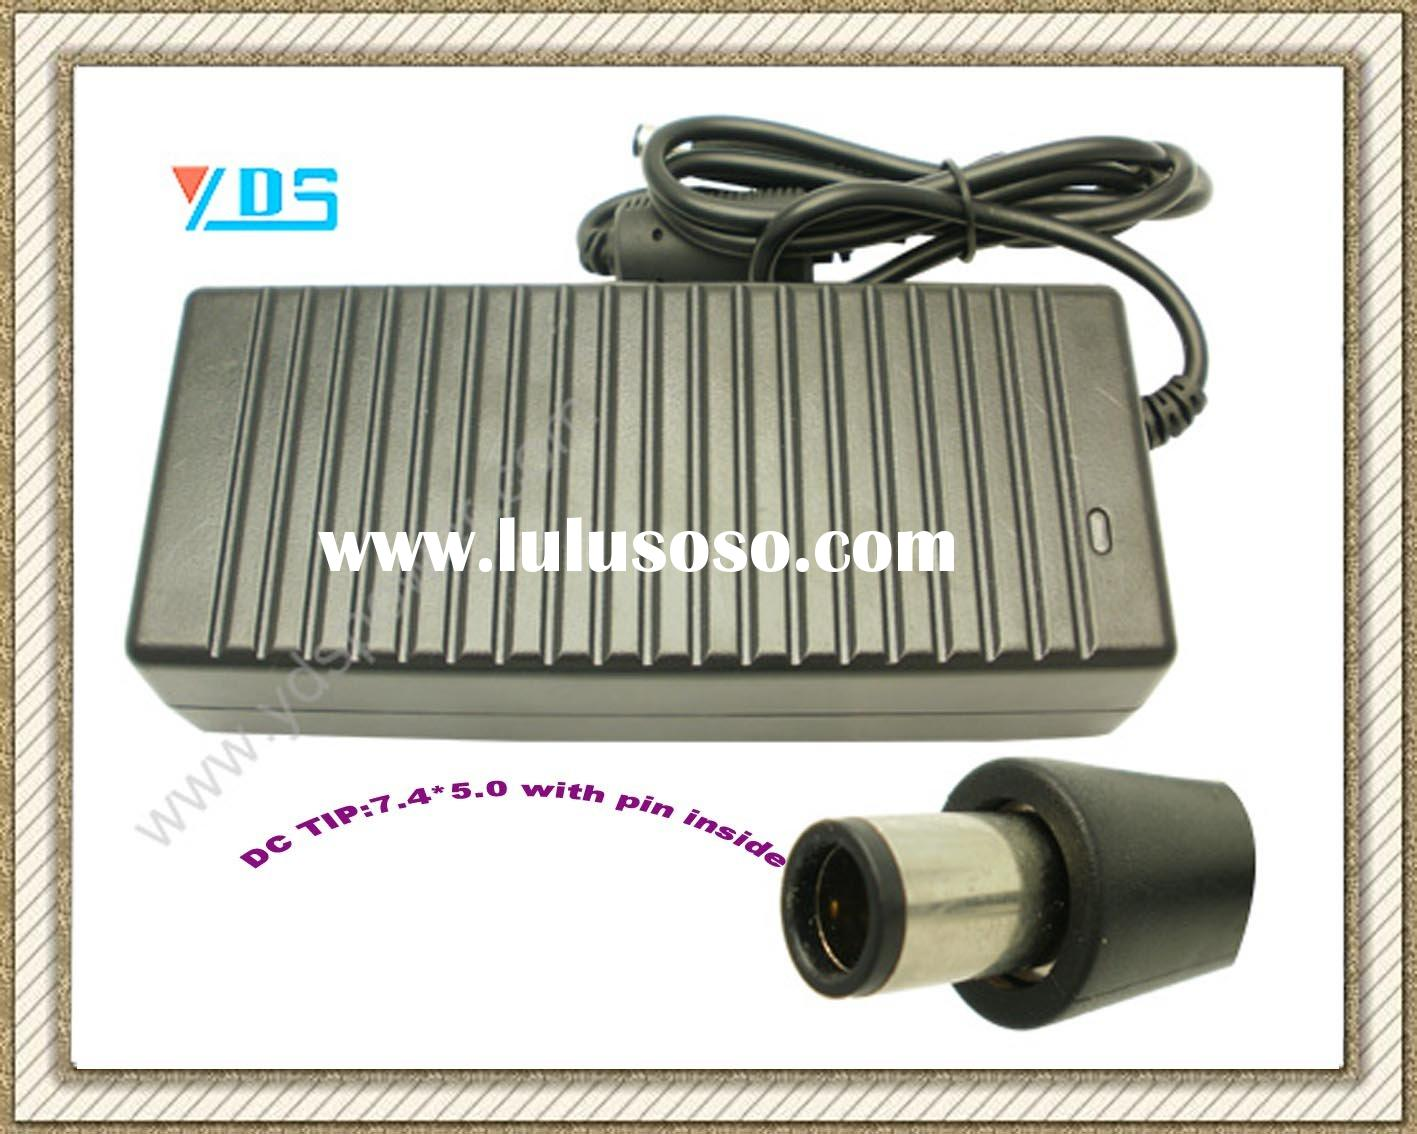 AC/DC Adapter for Dell Laptop 19.5V 6.7A 130W DC Connector 7.4*5.0 with pin